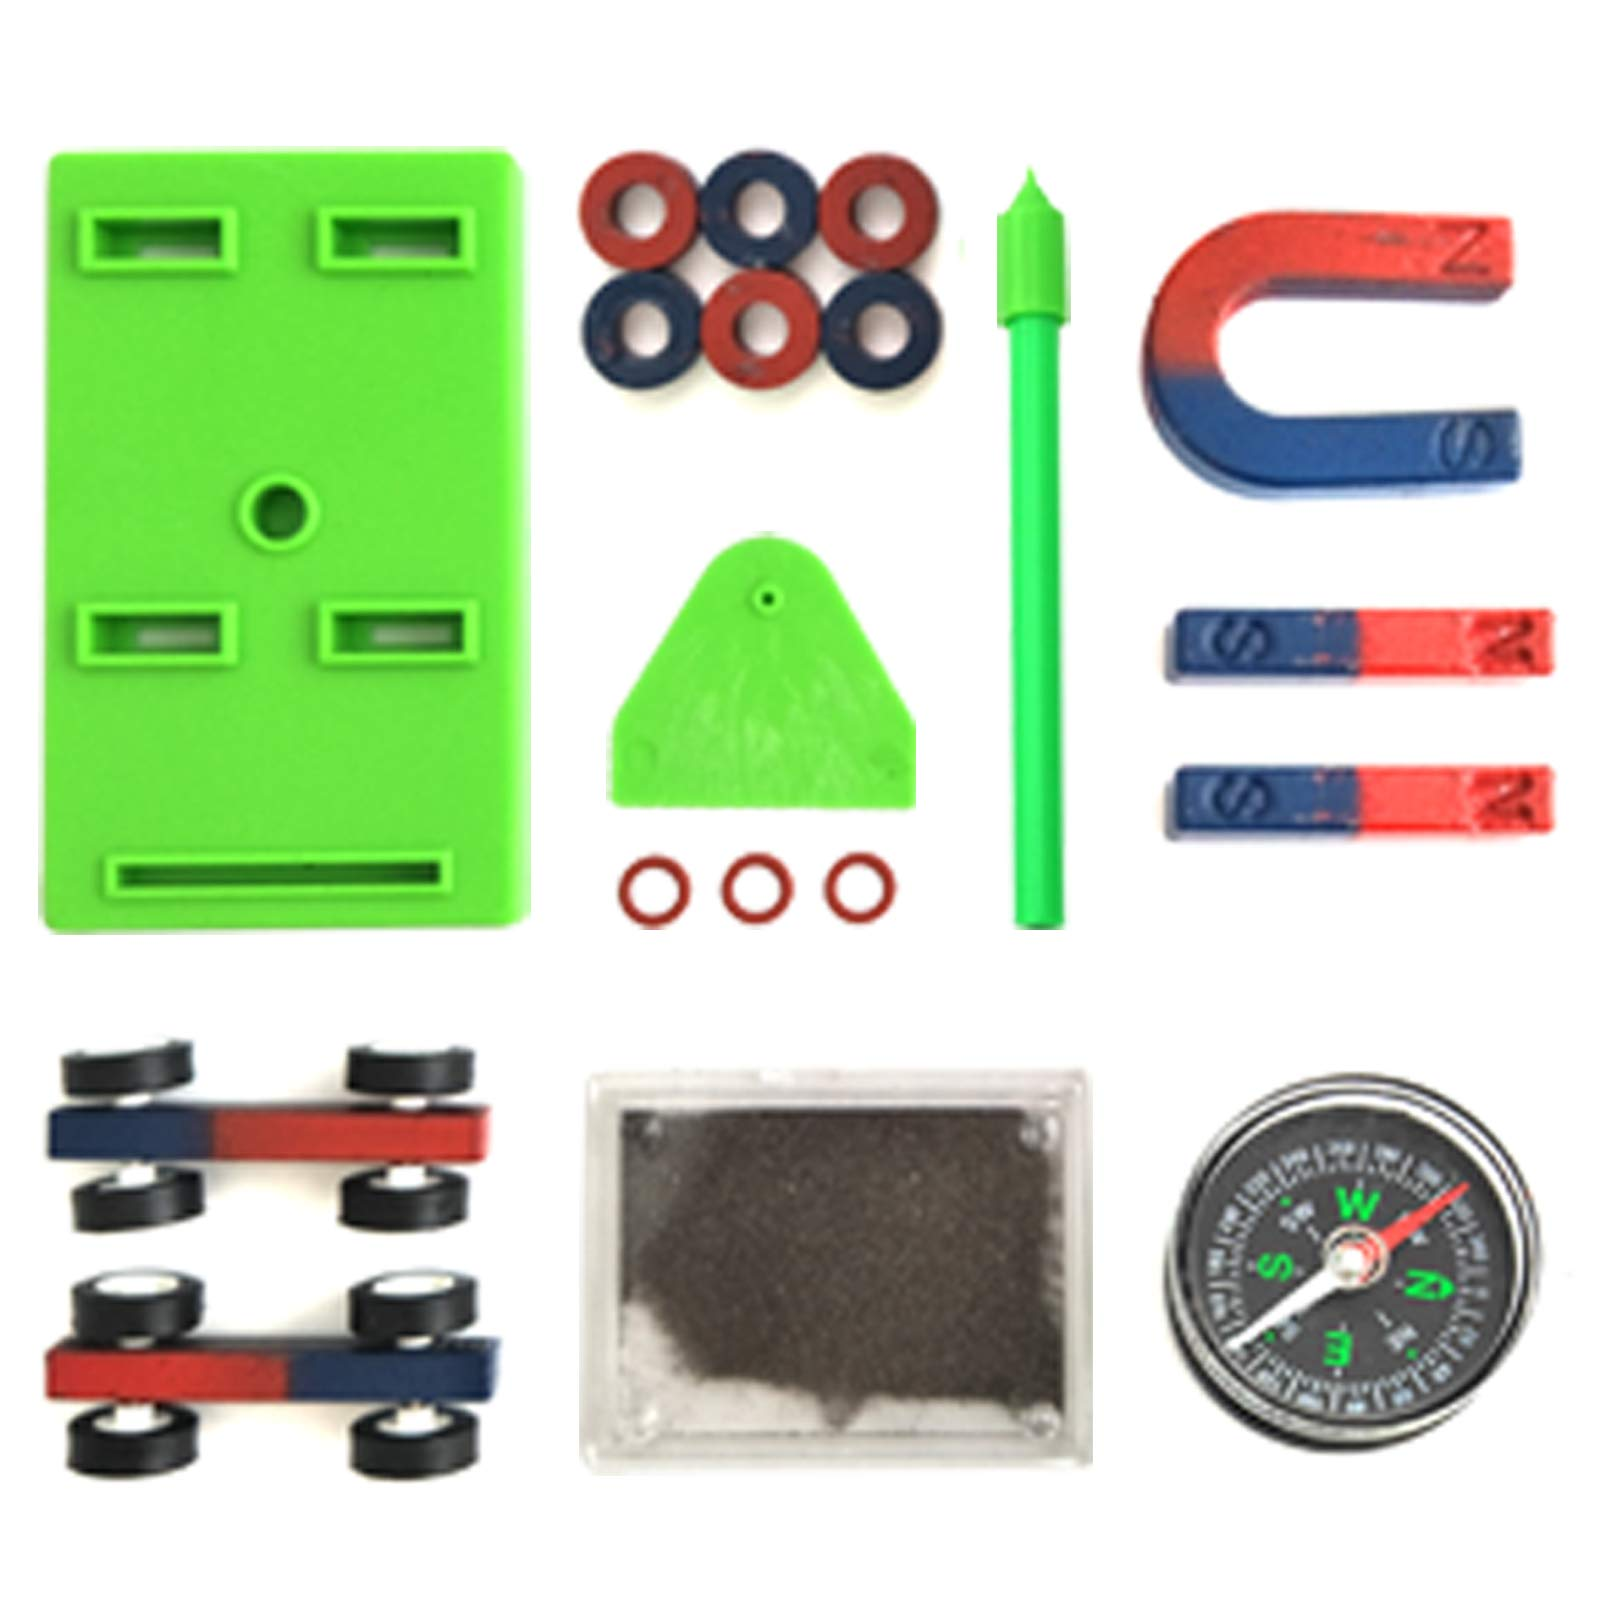 EUDAX Labs Junior Science Magnet Set for Education Science Experiment Tools Icluding Bar/Ring/Horseshoe/Compass Magnets